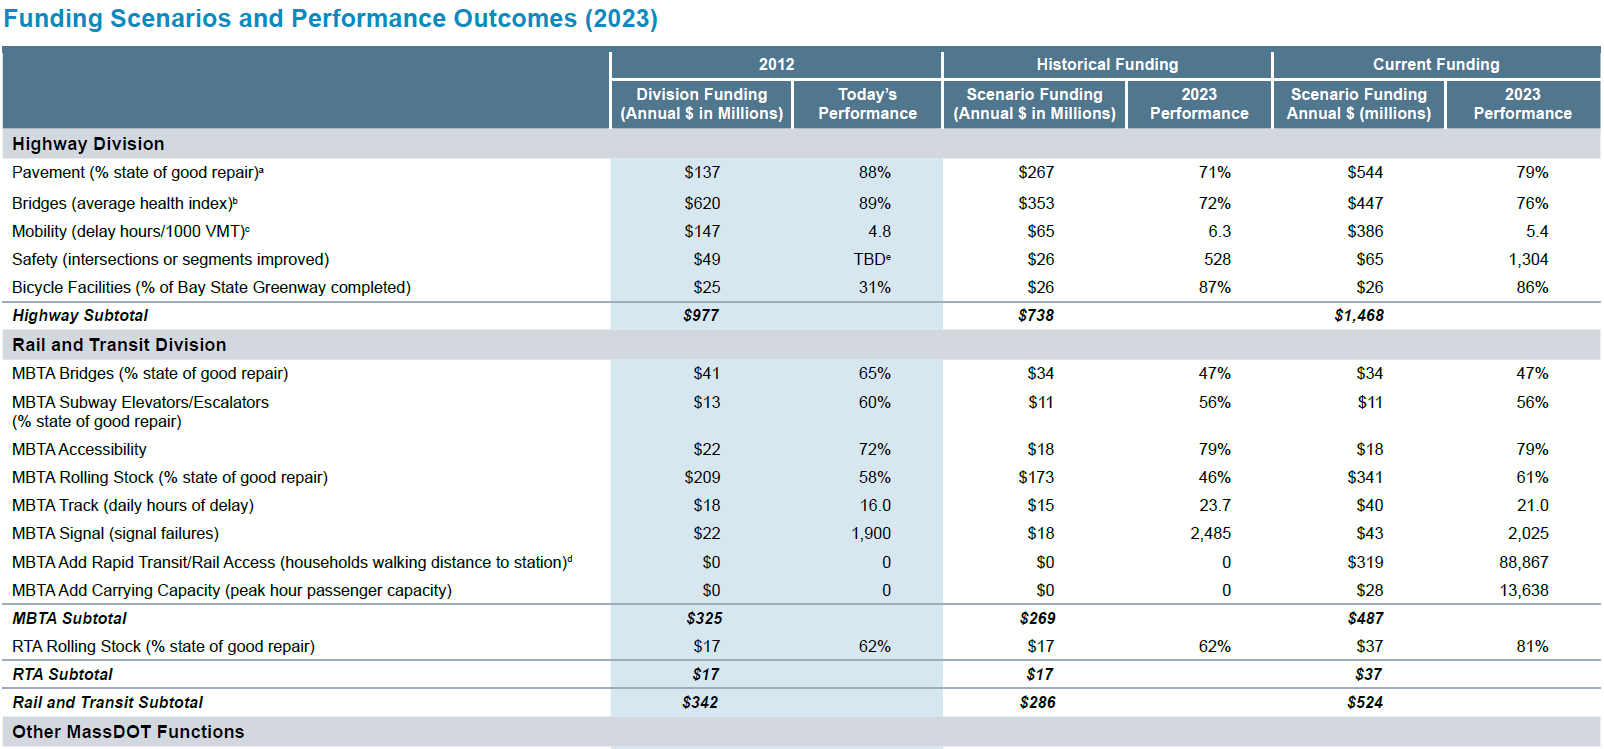 Funding scenarios and performance outcomes projected for 2023. Measures are divided by highway and rail and transit and historical and current funding is compared, with outcomes for each measure at that funding level.